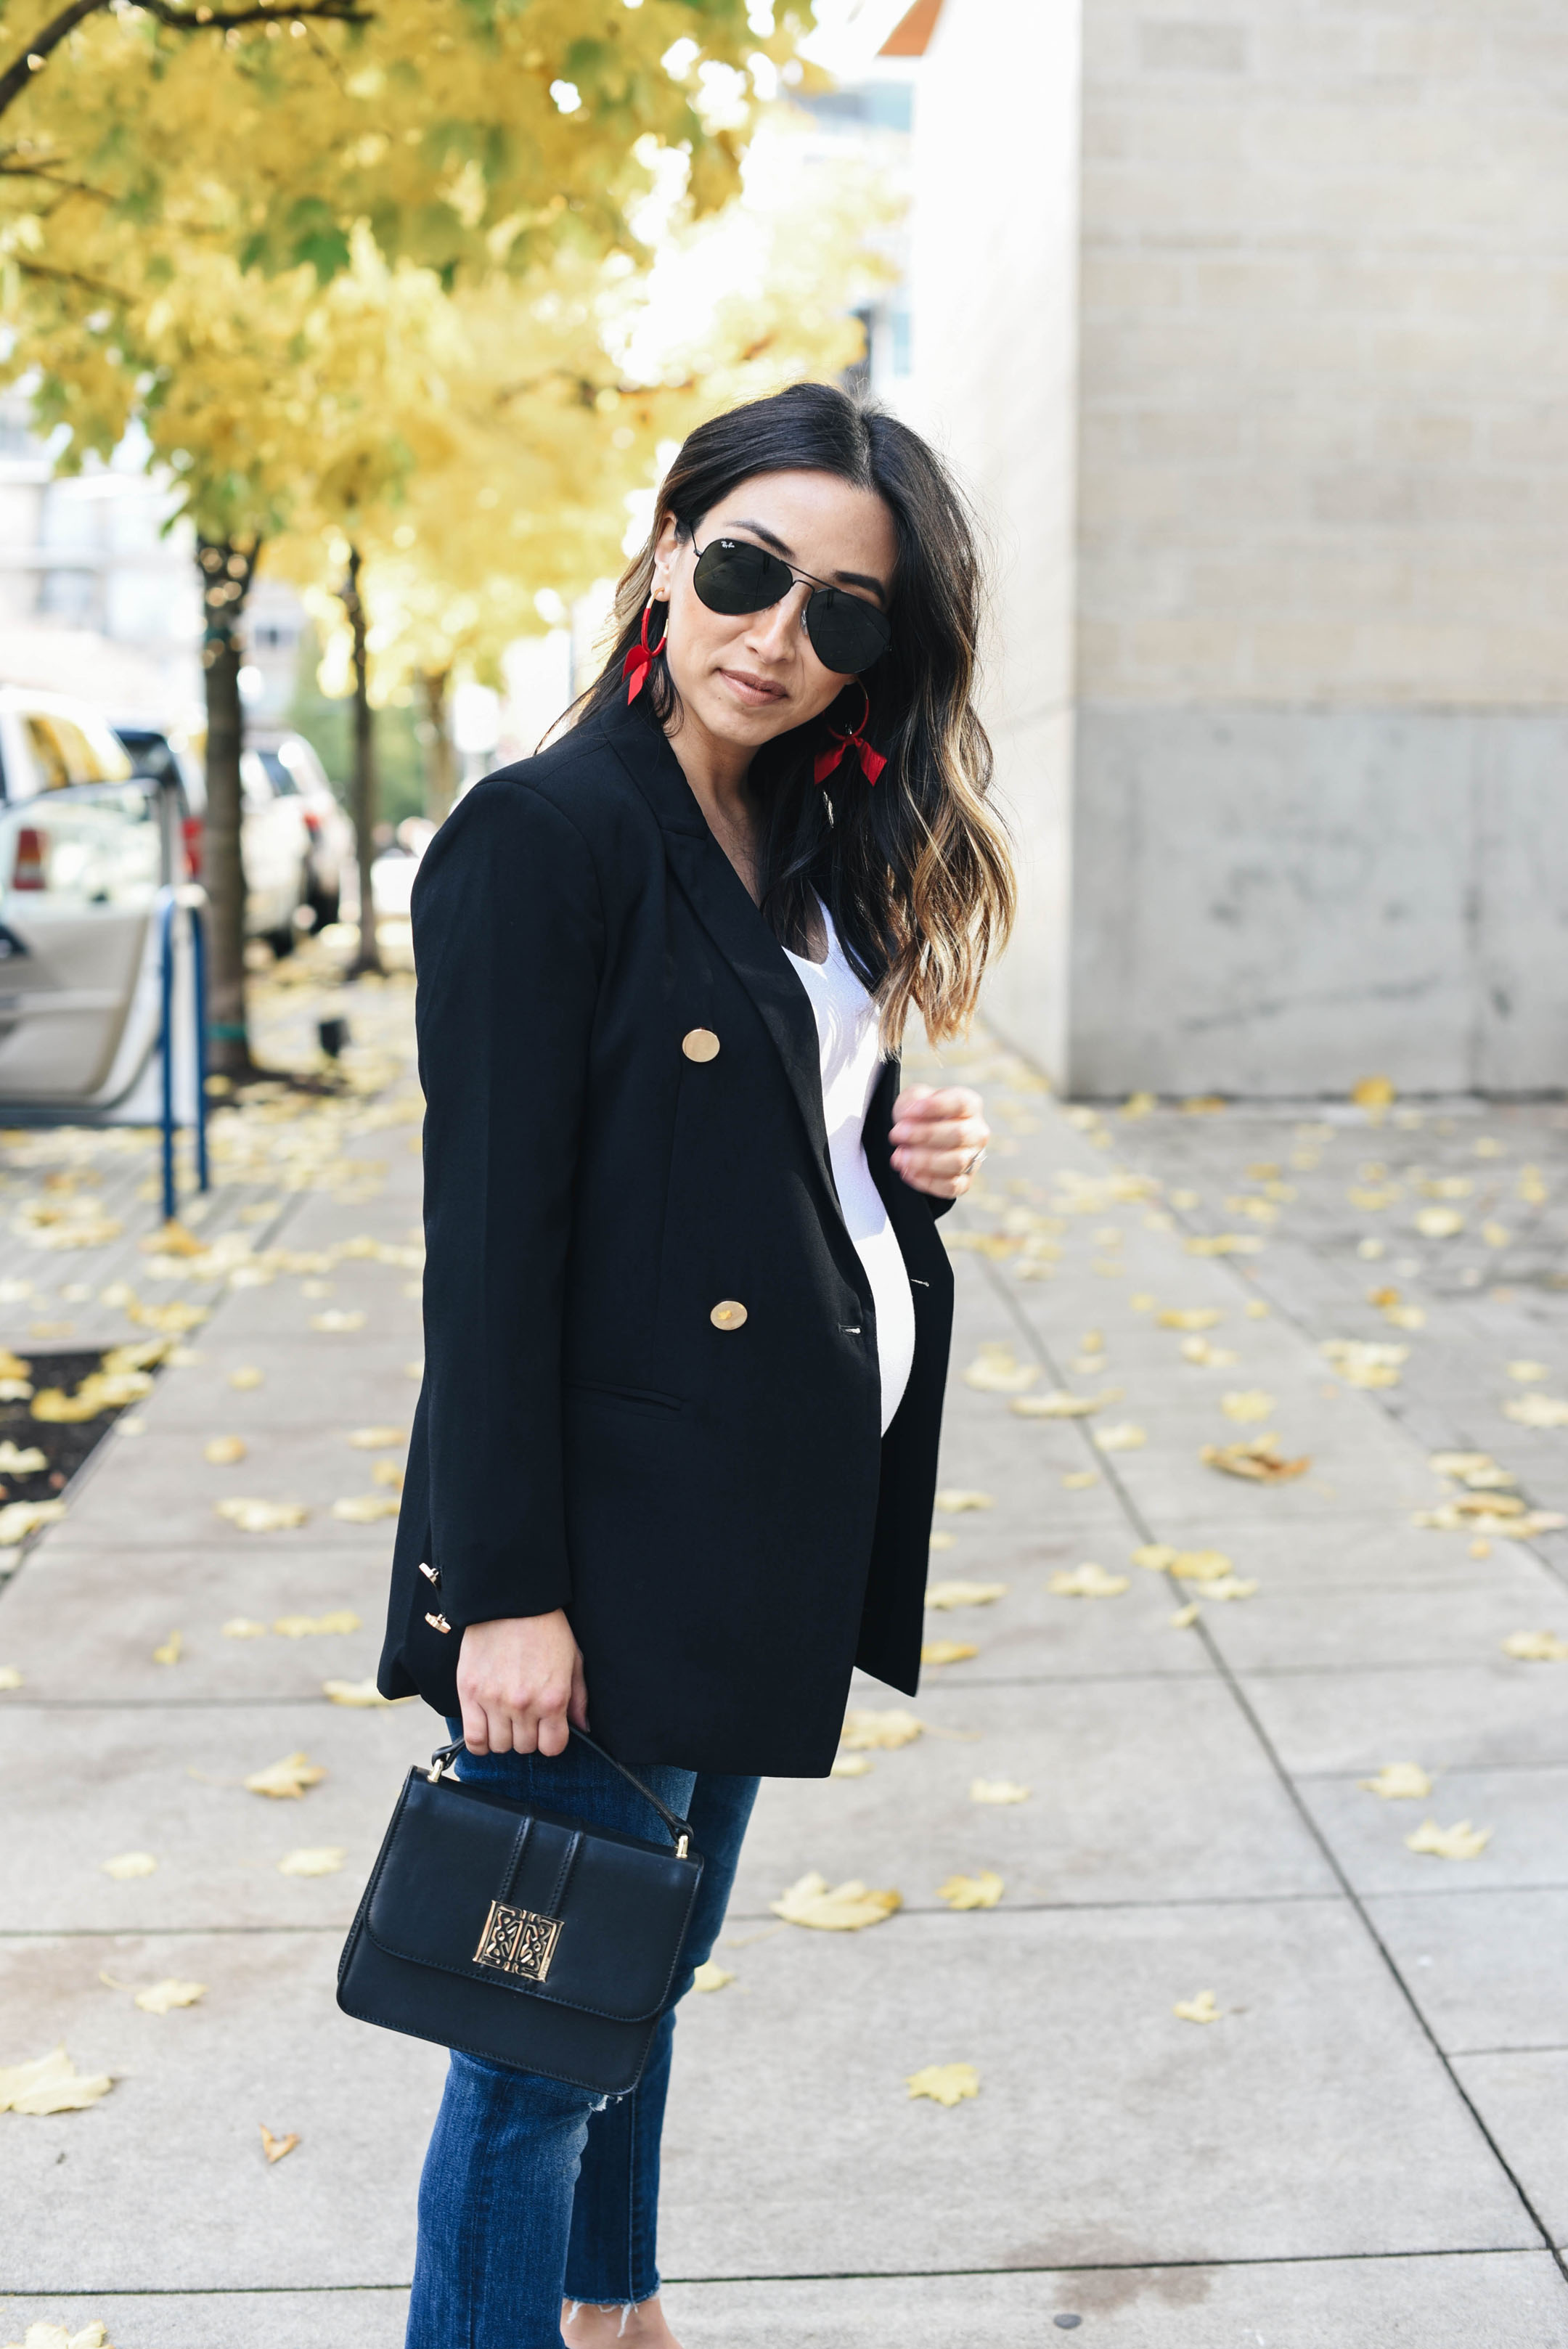 Easy holiday outfit ideas